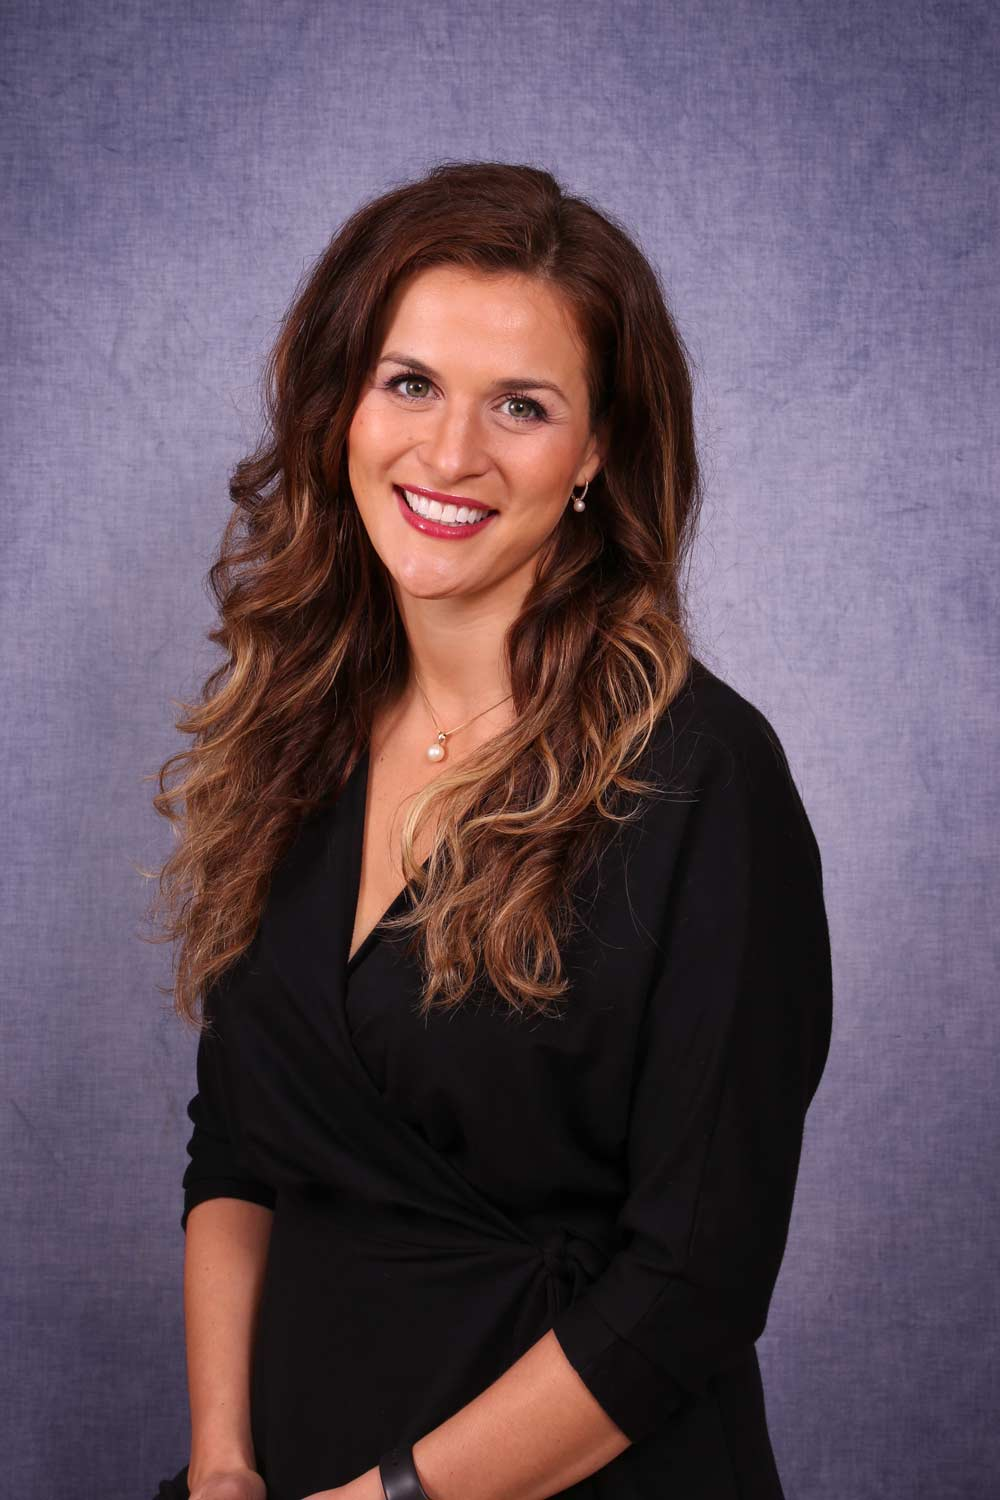 Kristyna Giancola - Physician Assistants Certified of CNY Cosmetic & Reconstructive Surgery, LCC in Syracuse, New York